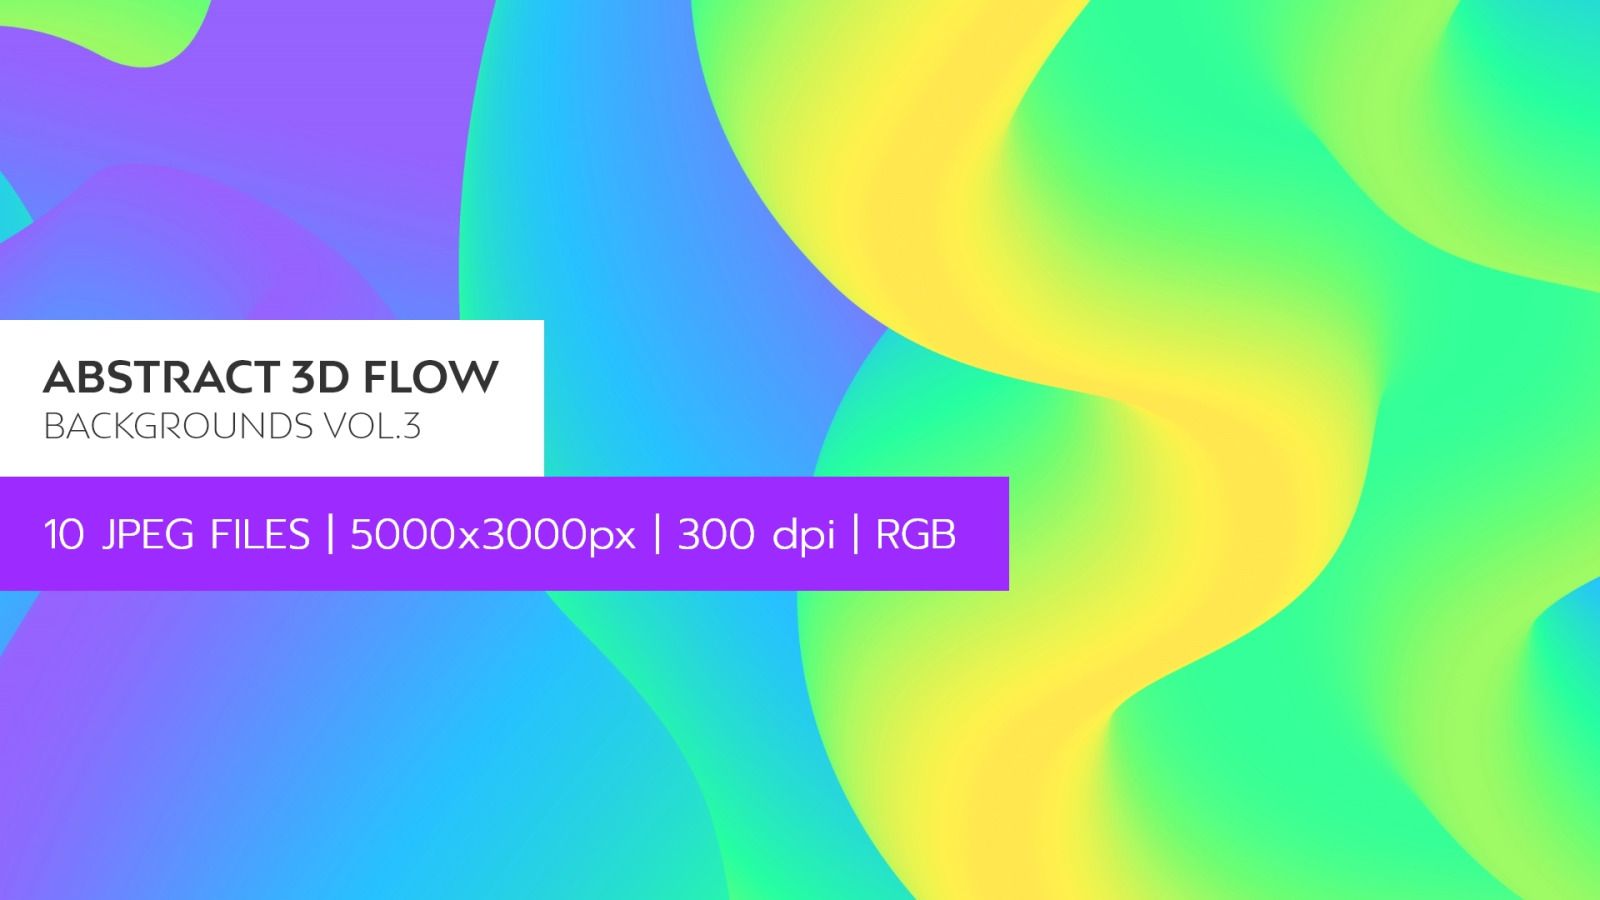 Abstract 3D Flow Backgrounds Vol.3